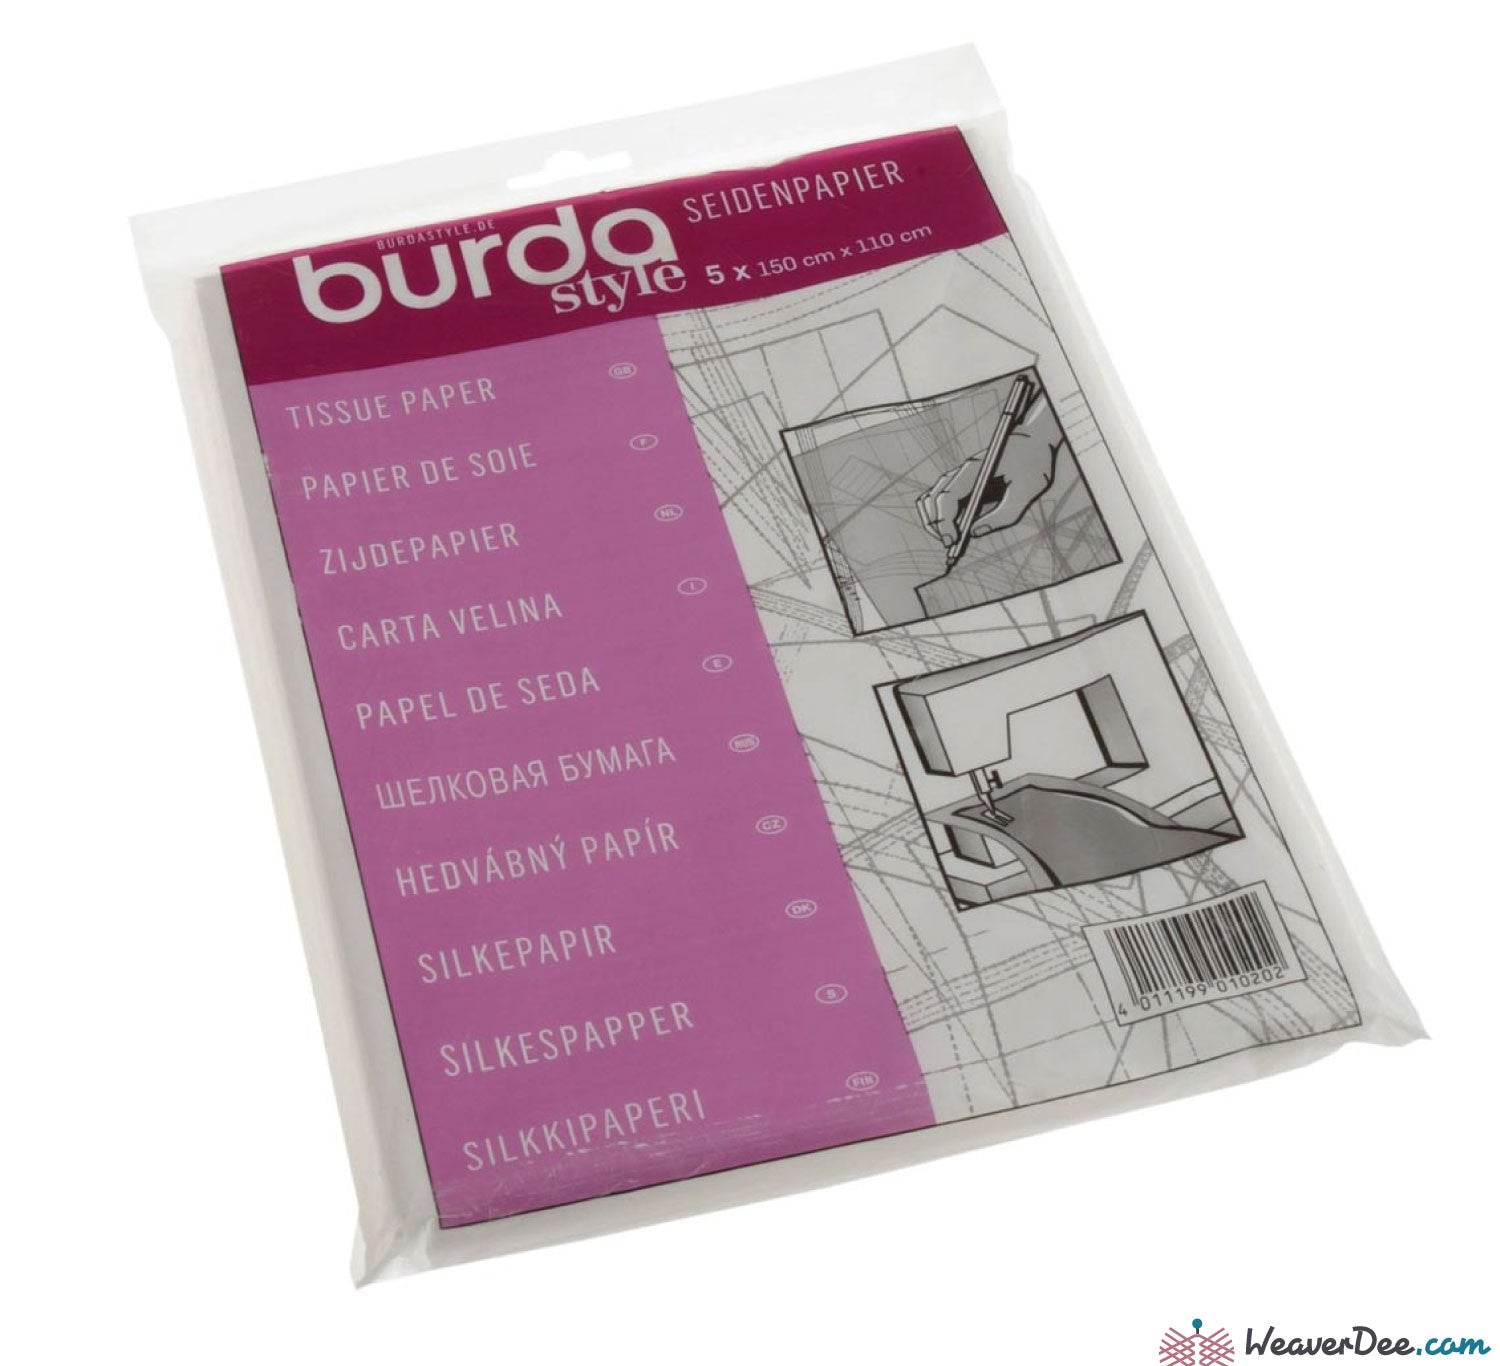 BURDA Copy Tracing Carbon Paper Yellow /& White or Blue /& Red